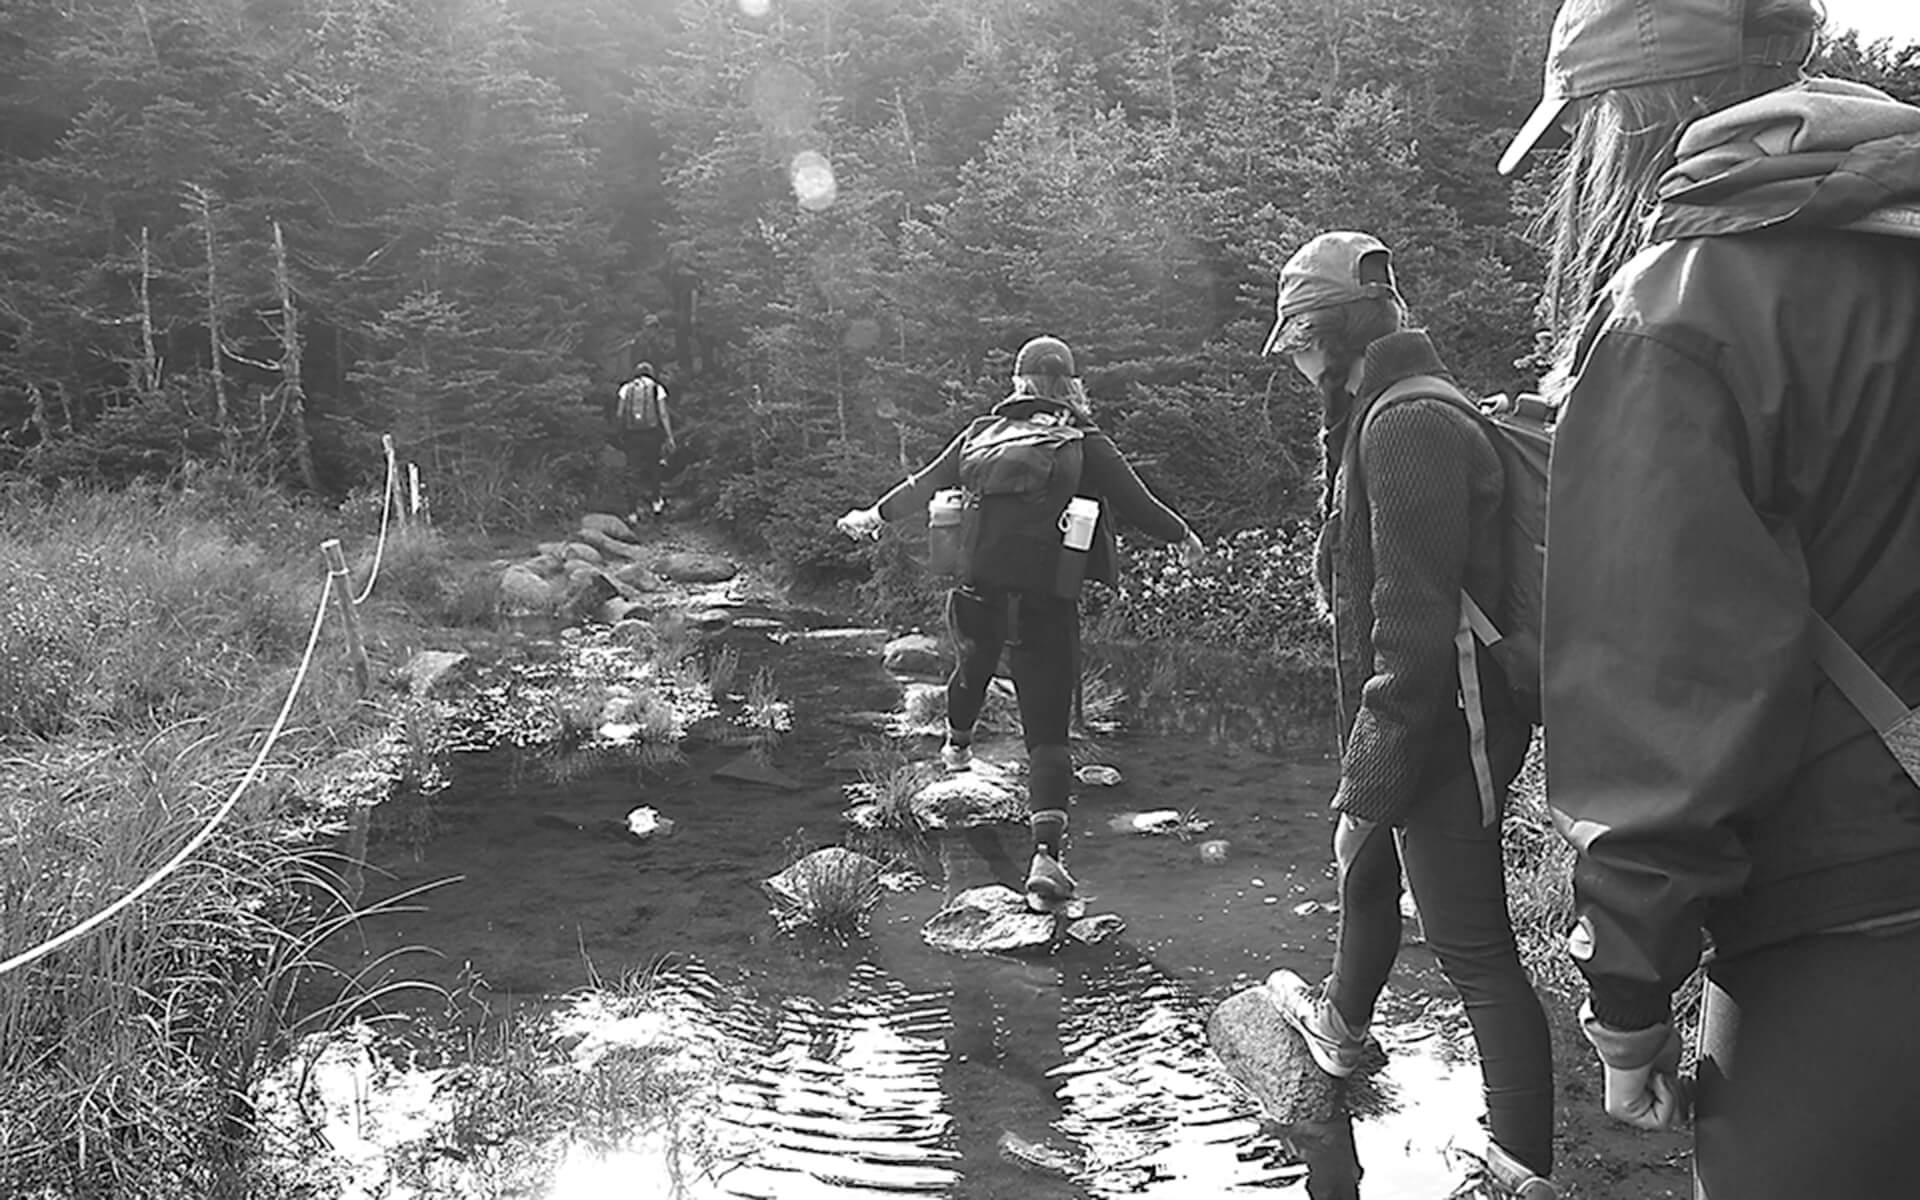 IDM students walking across a river in New Hampshire